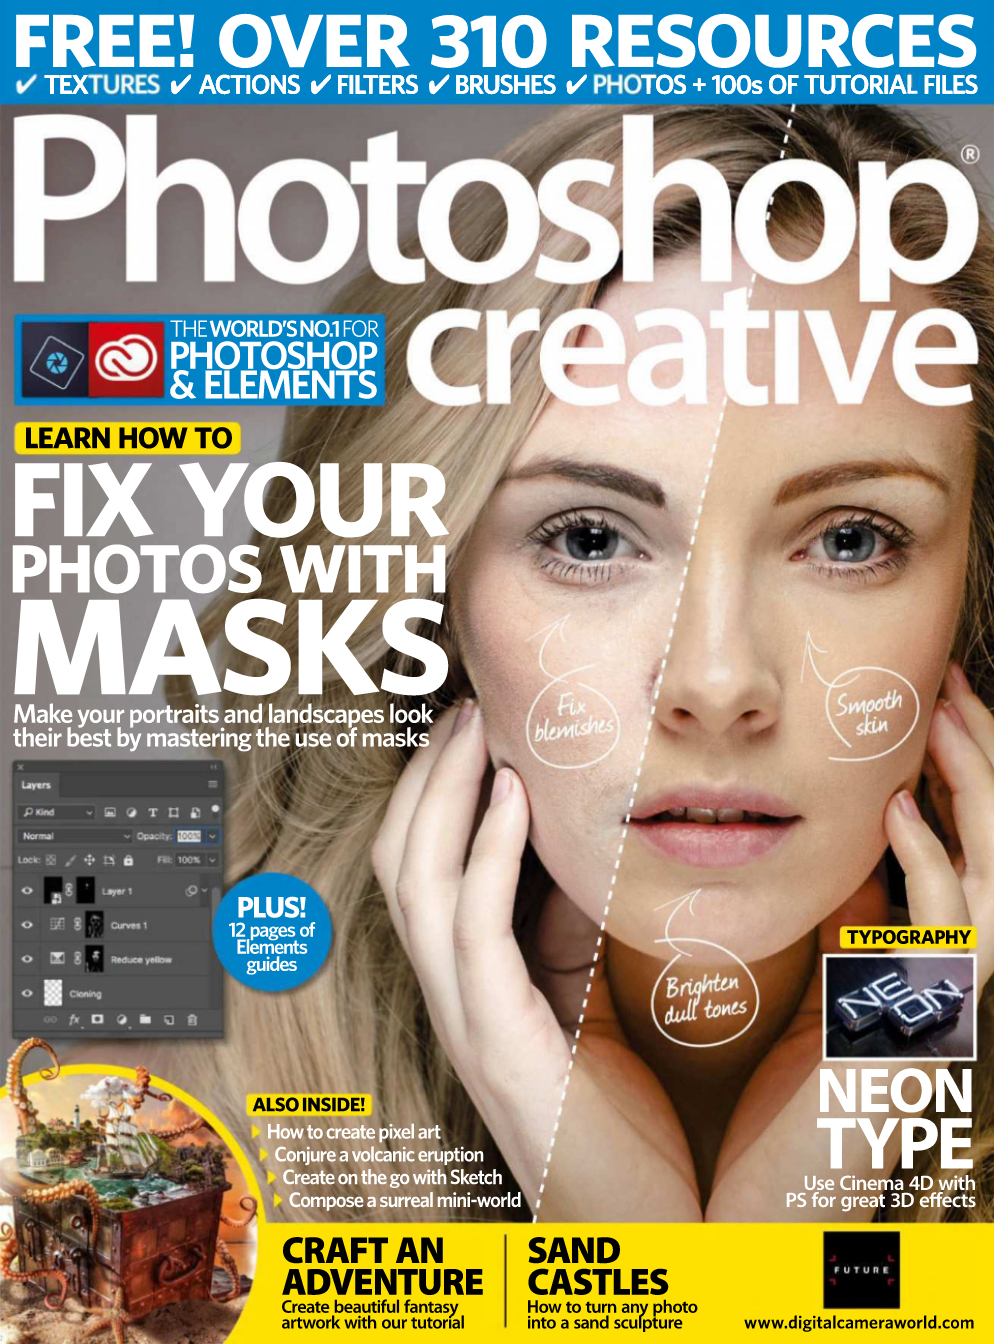 Photoshop Creative - Issue 166.